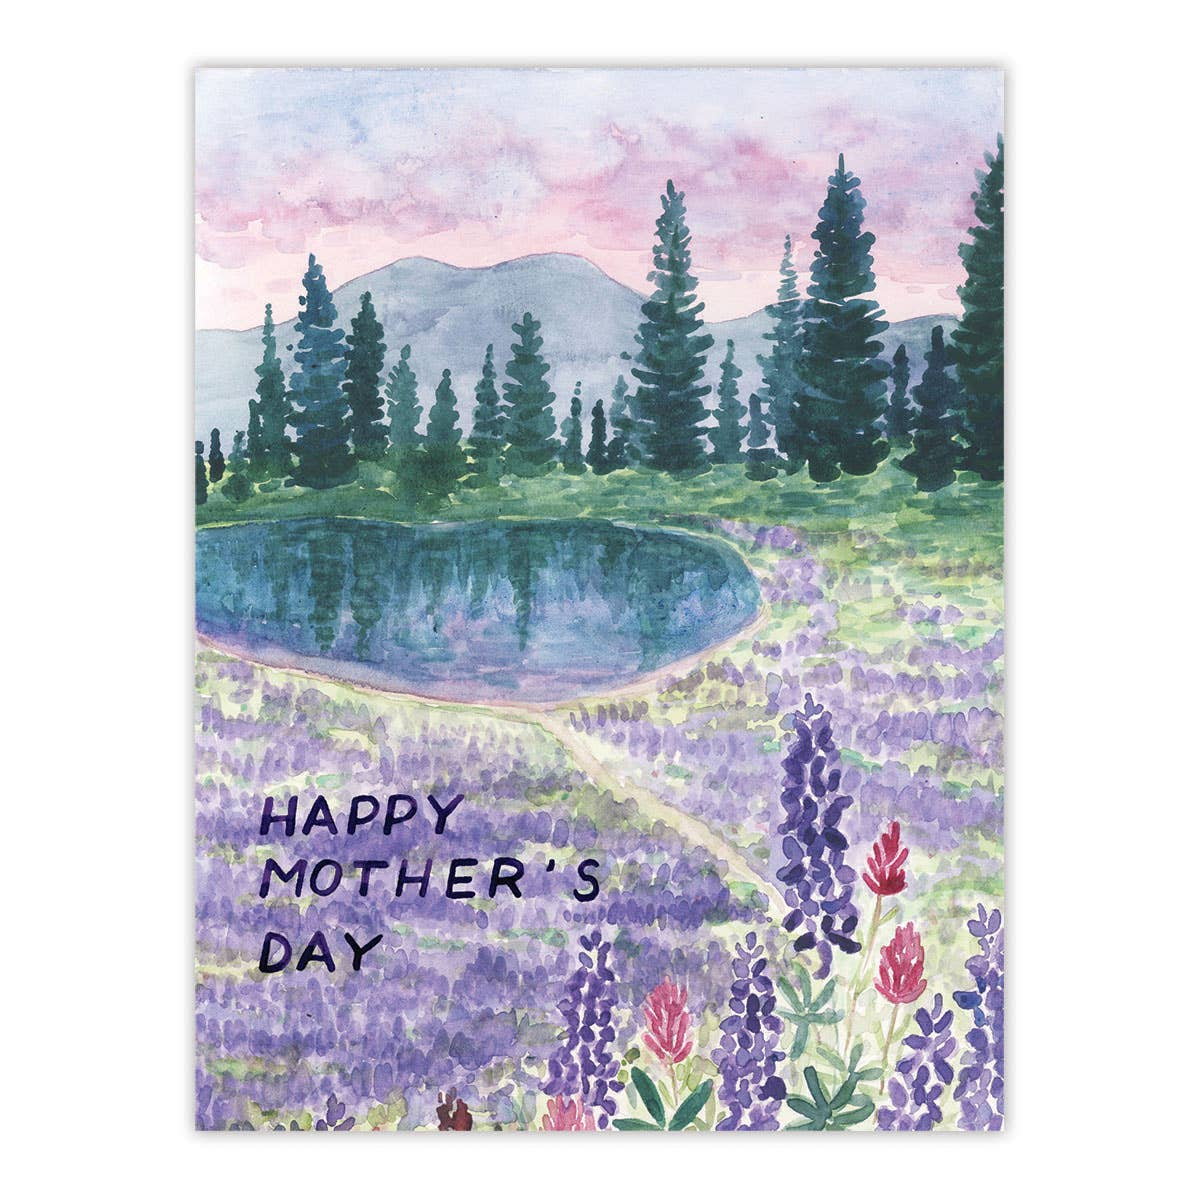 Hiking Mother's Day Card